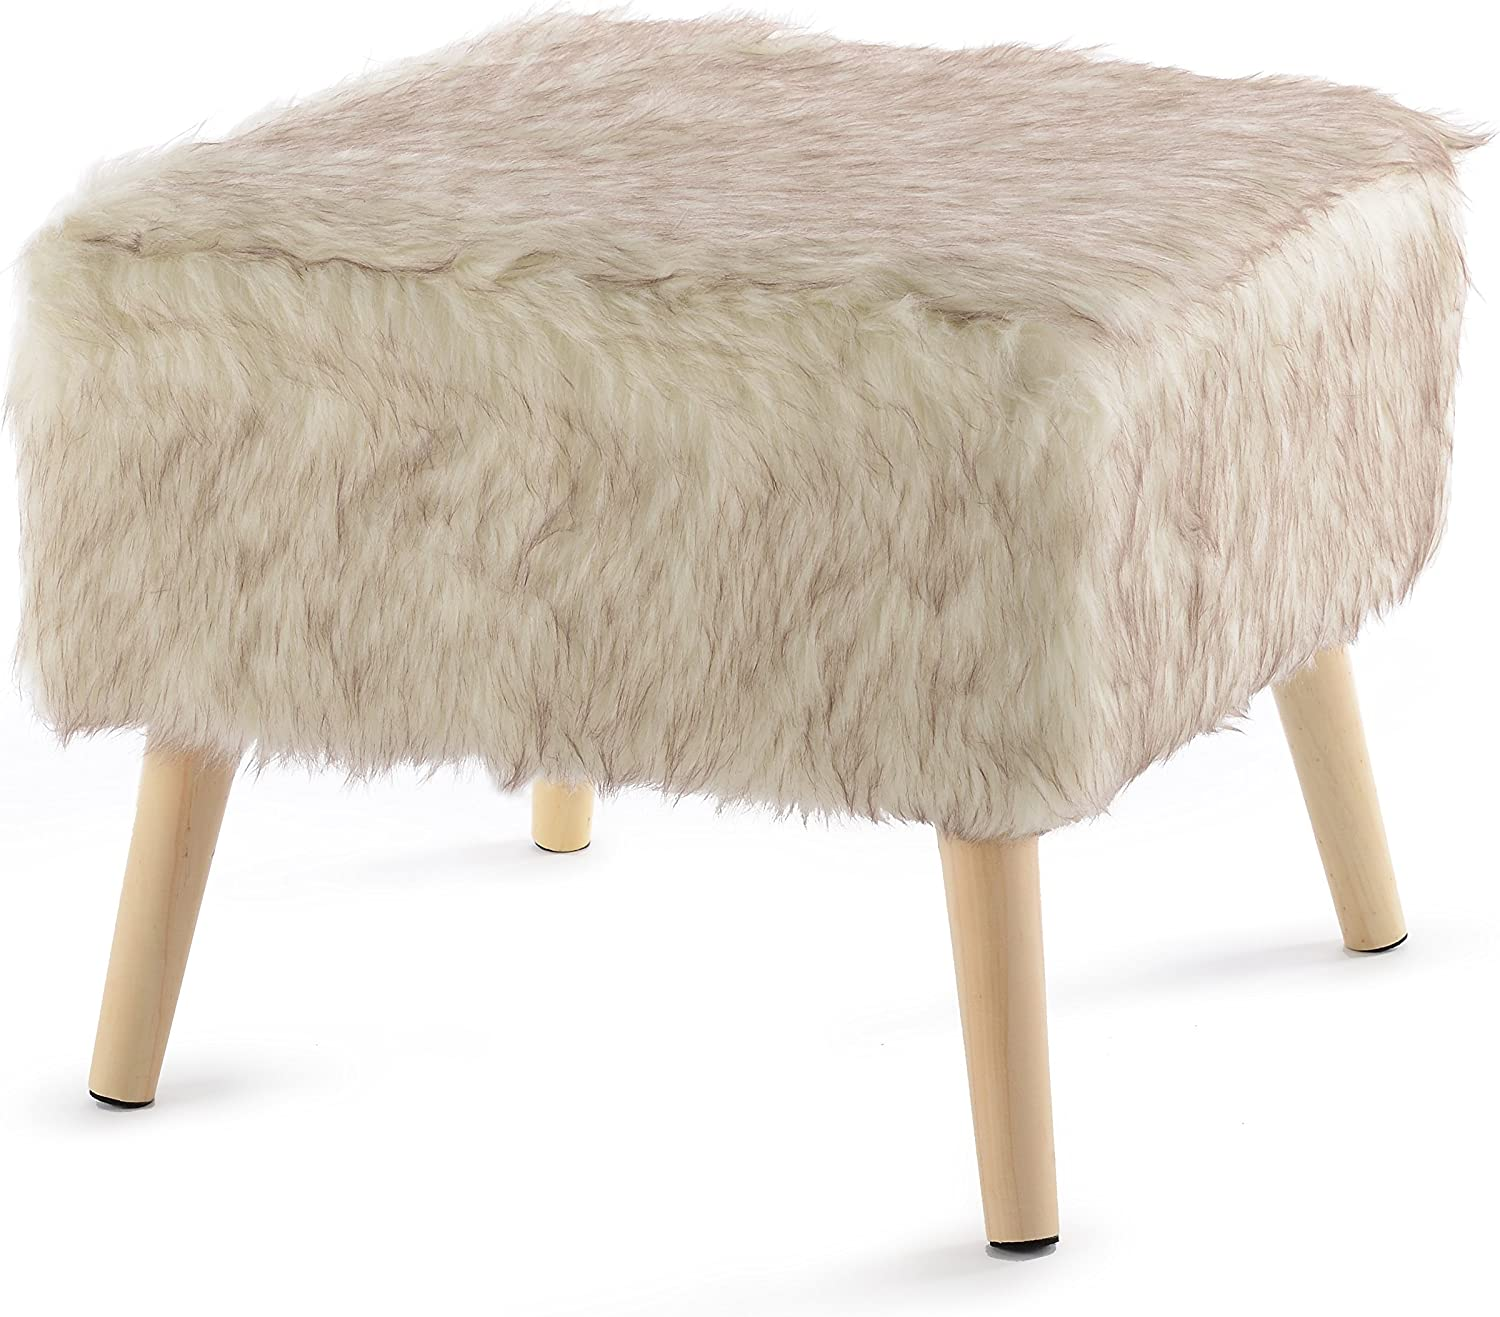 "Cheer Collection 17"" Square Ottoman 